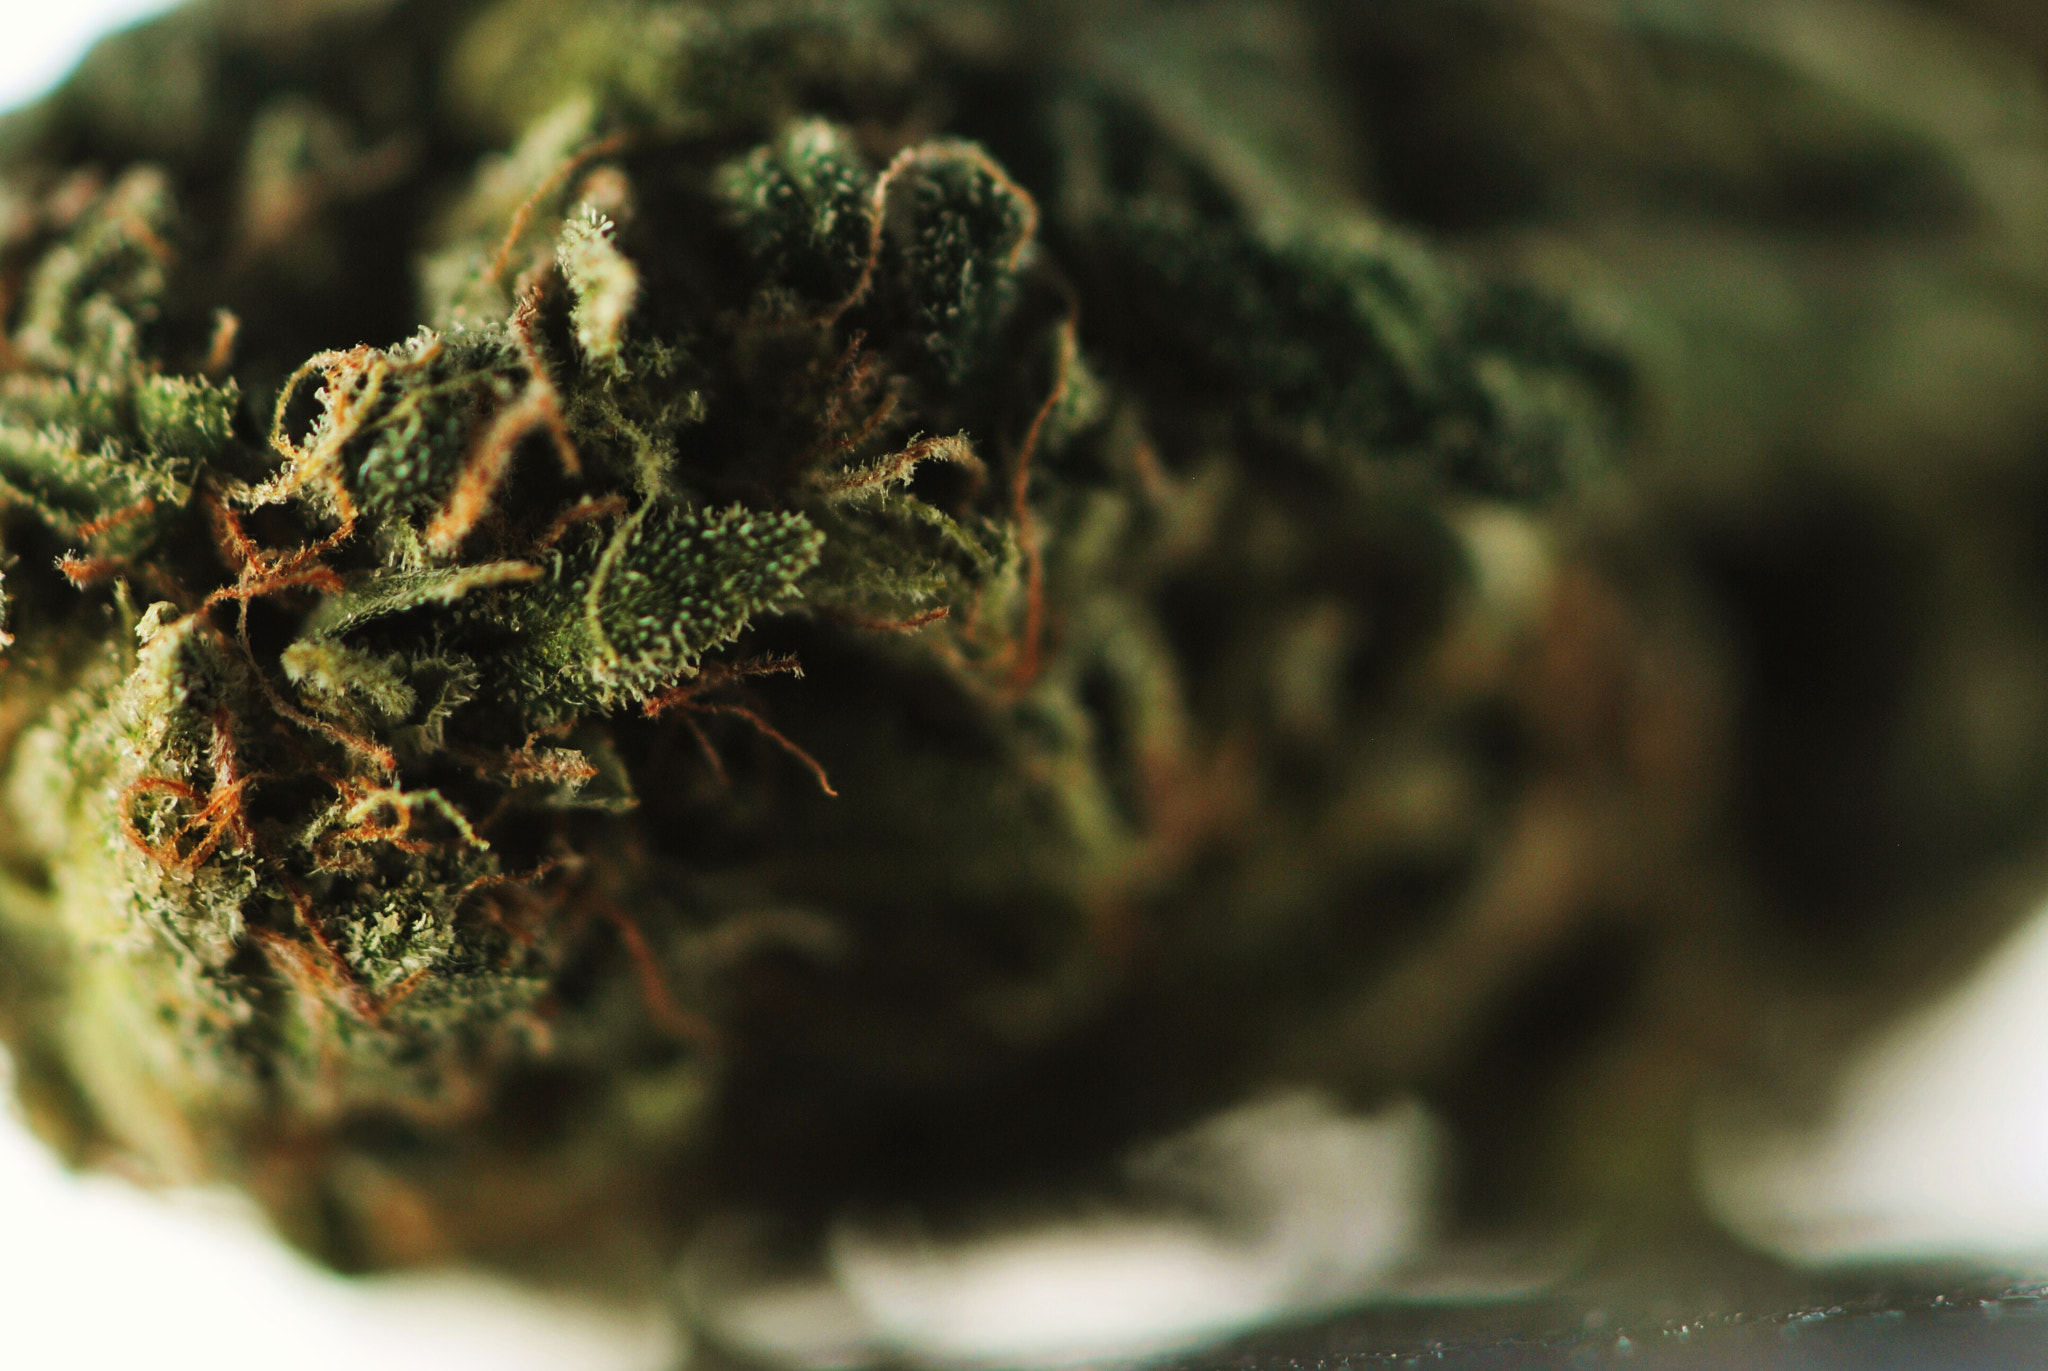 Photograph Sour Diesel by Anthony Mark on 500px